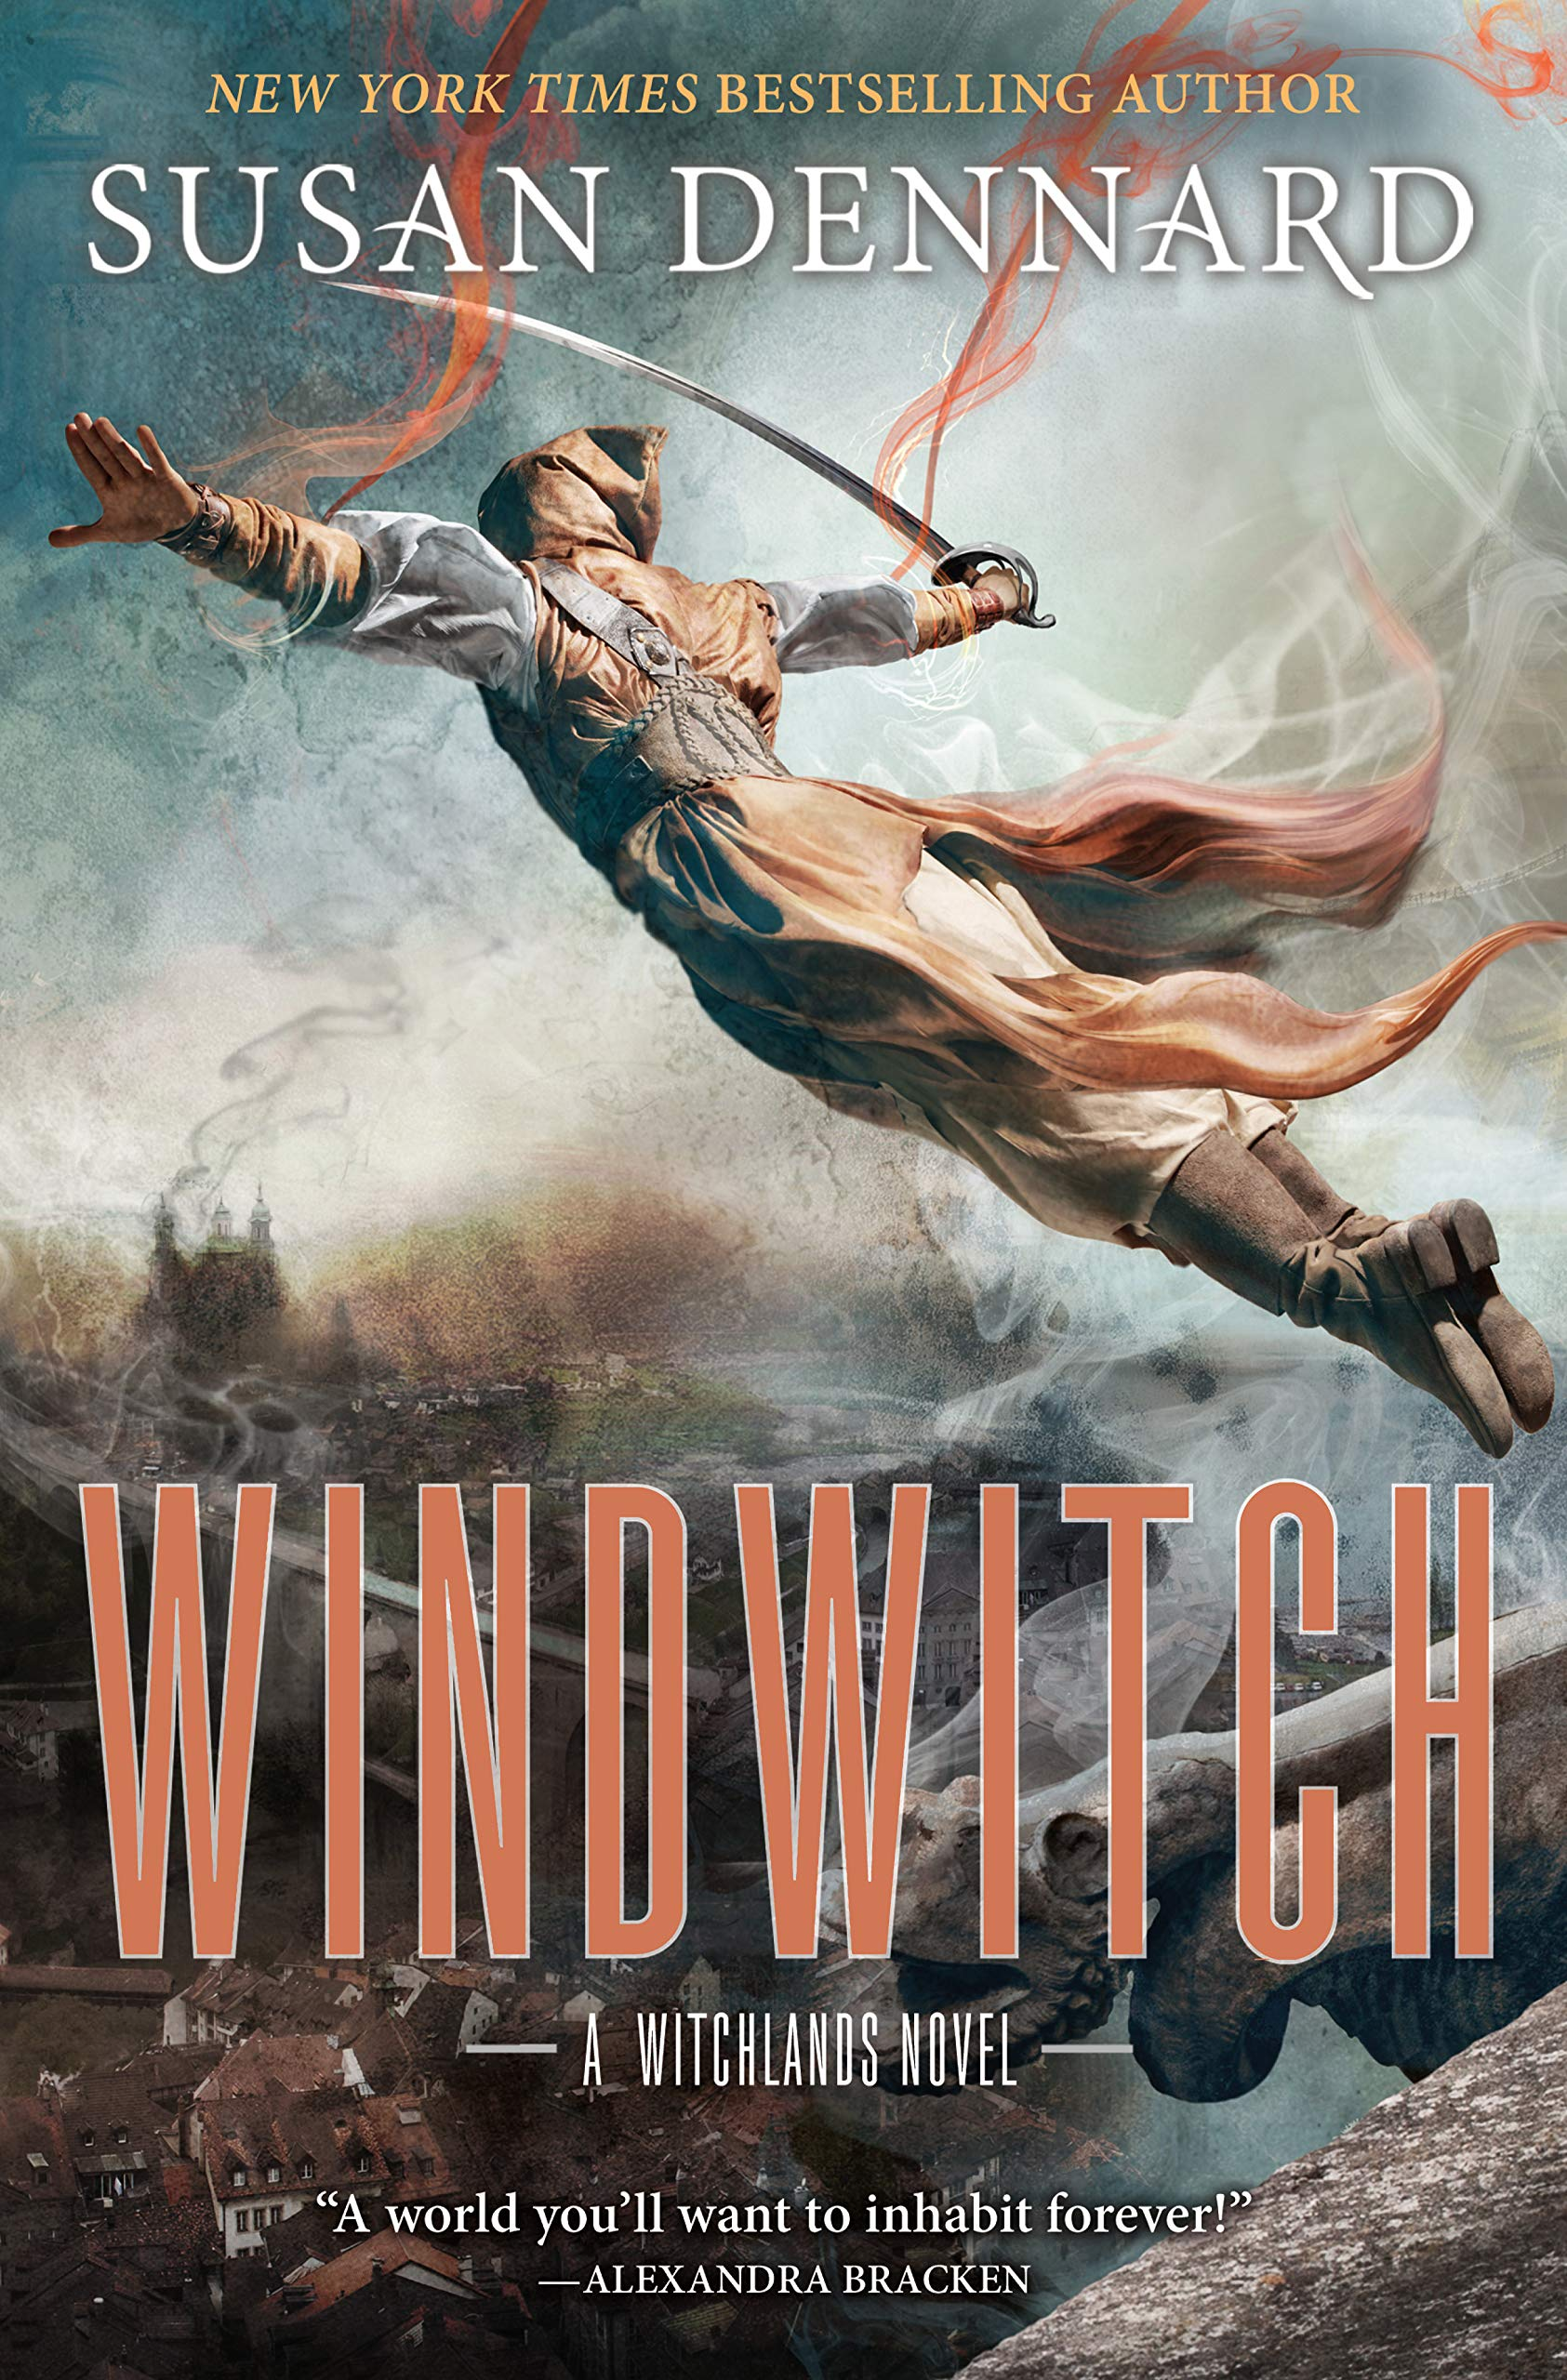 Amazon Com Windwitch The Witchlands The Witchlands 2 9780765379306 Dennard Susan Books